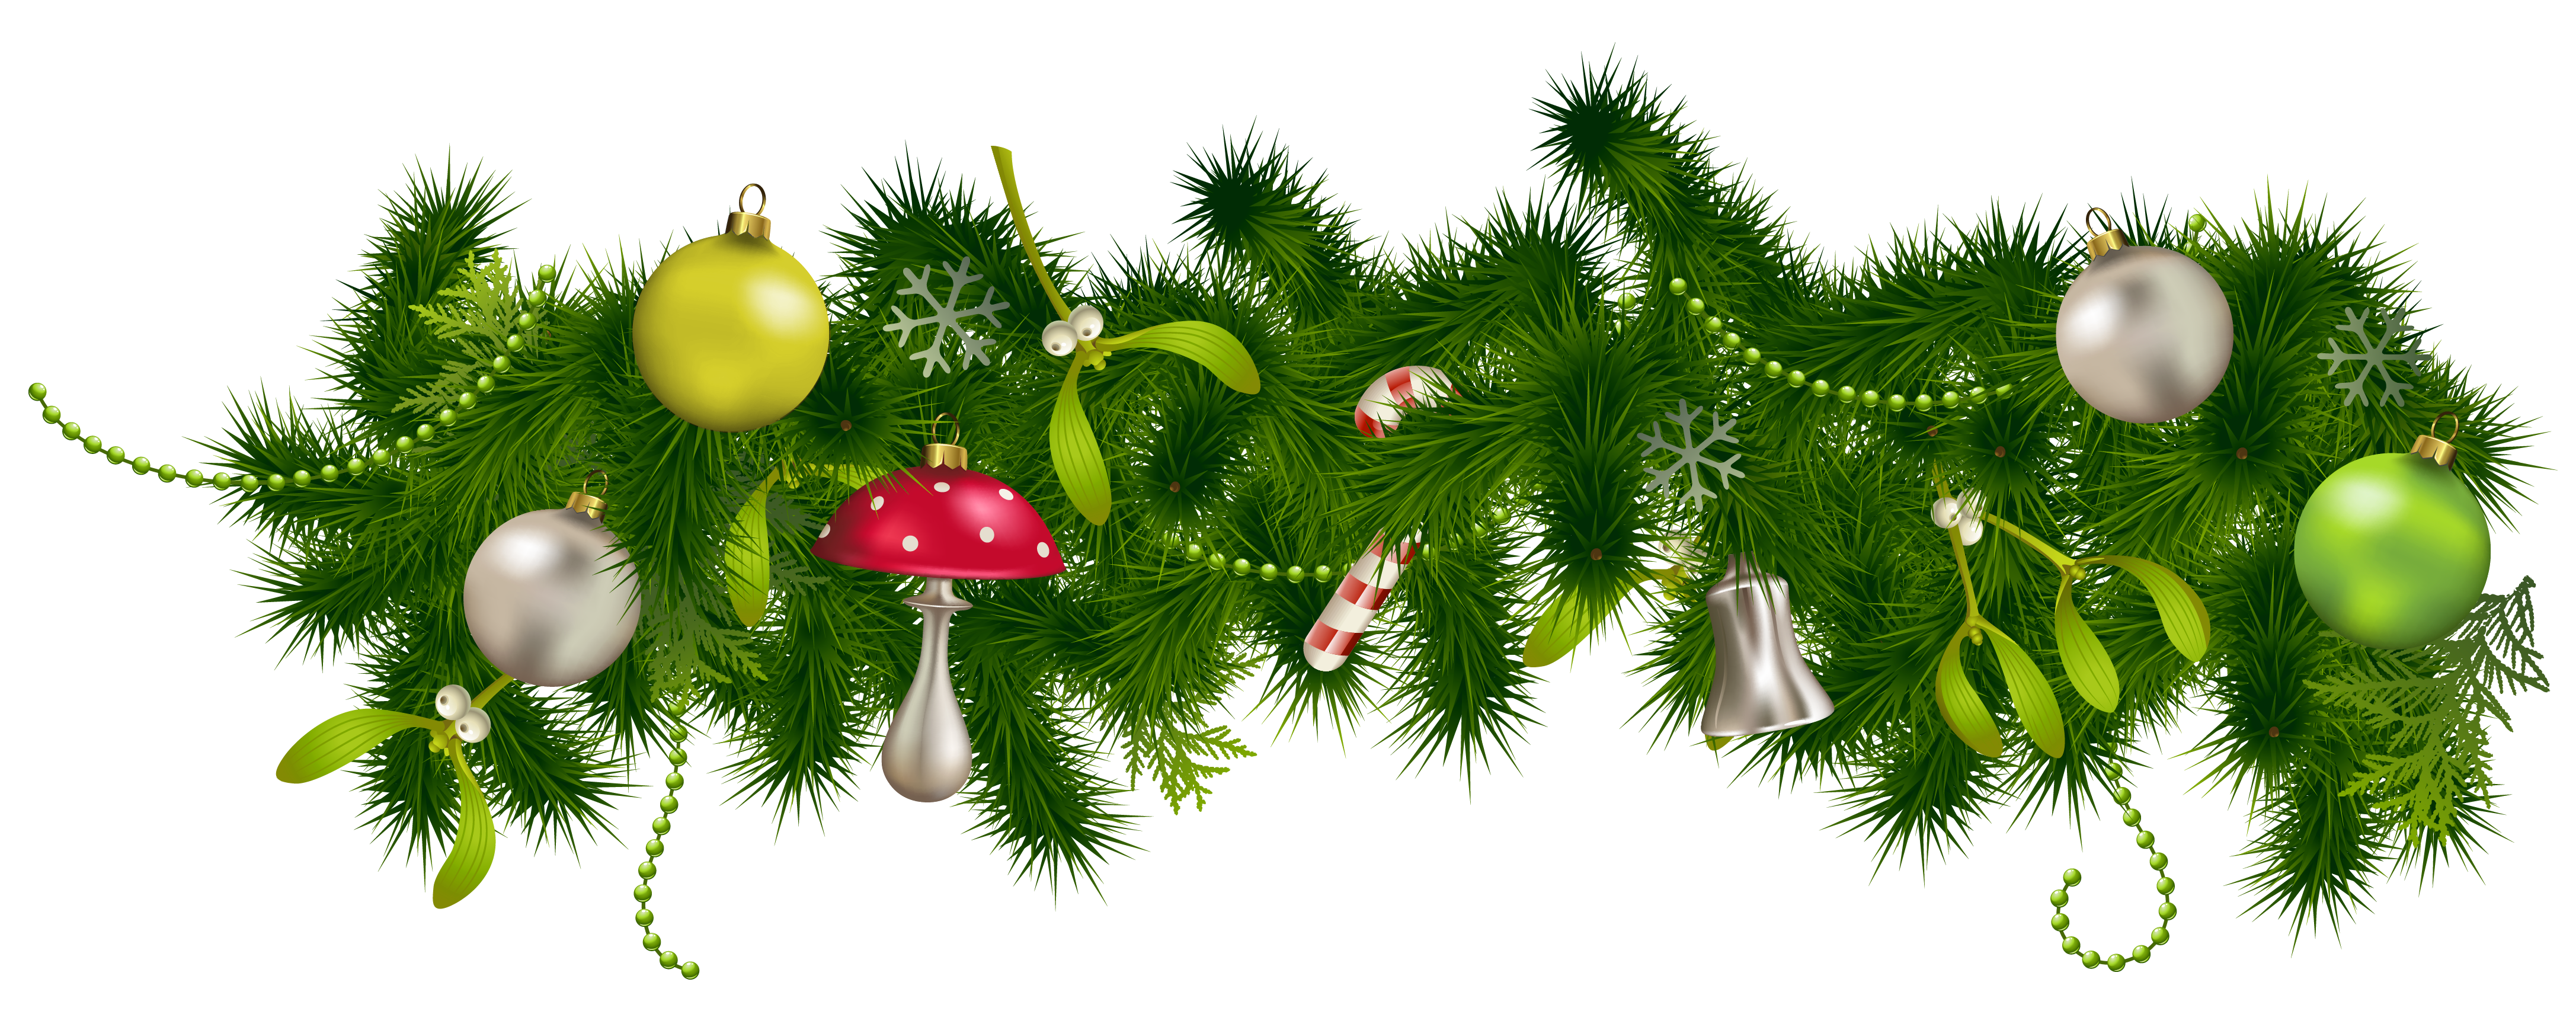 Green garland christmas ornaments png. Download free transparent image